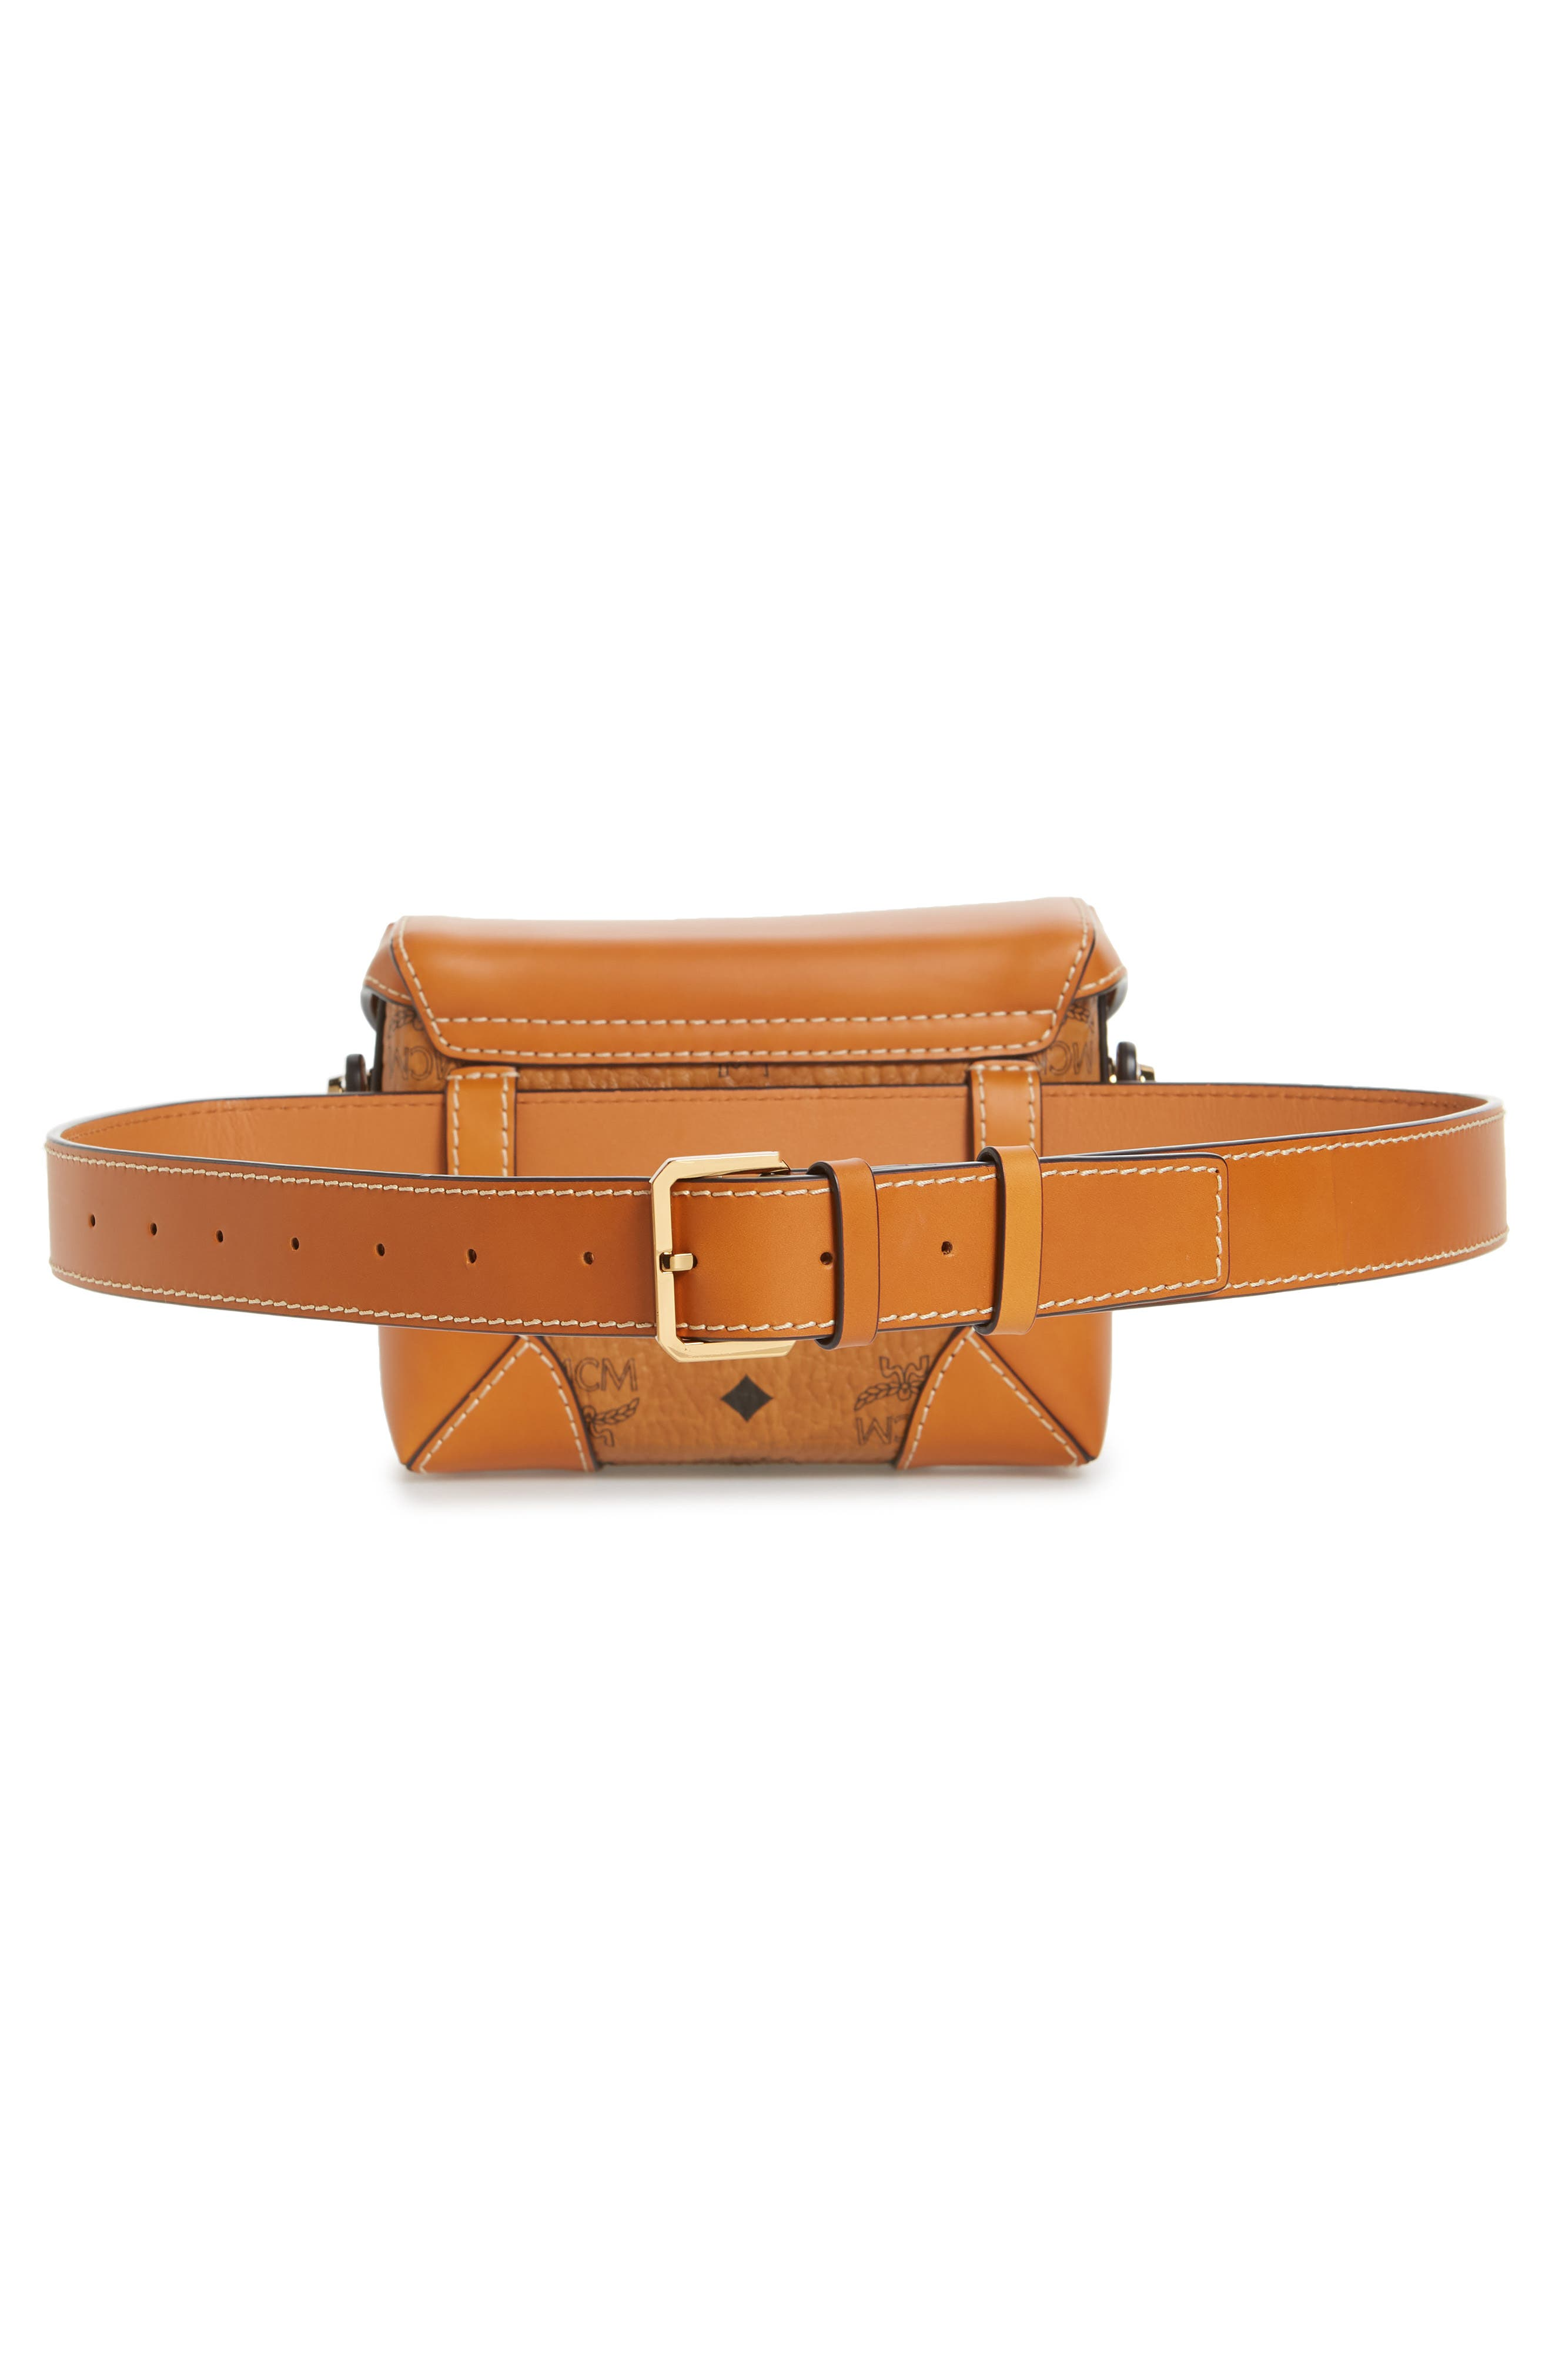 Small Berlin Canvas & Leather Belt Bag,                             Alternate thumbnail 5, color,                             200